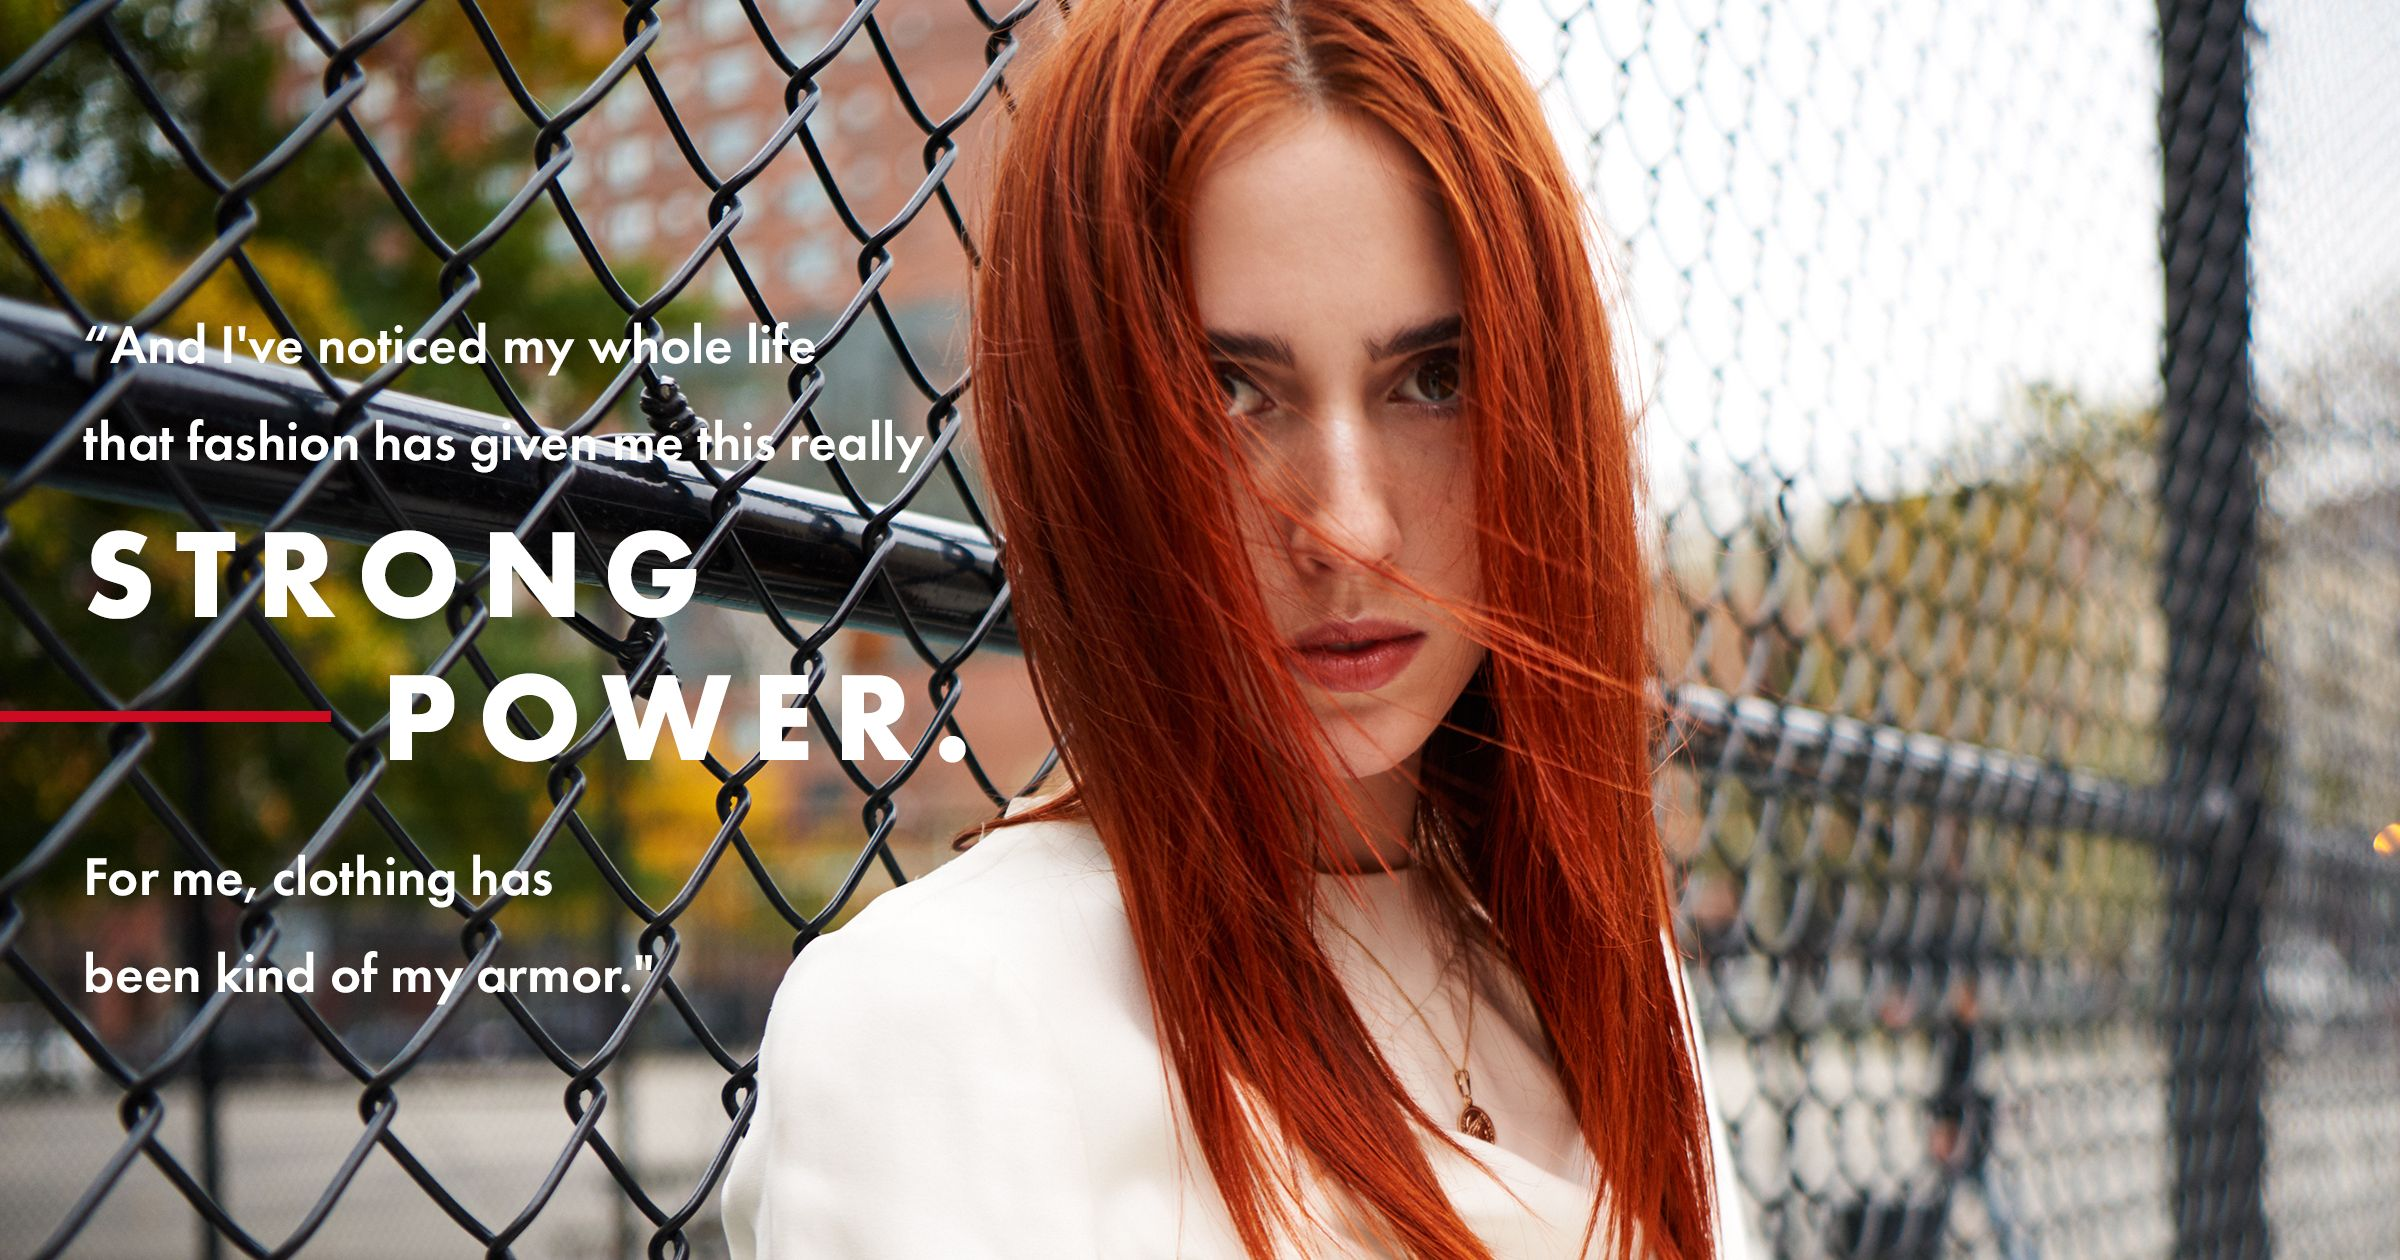 Teddy Quinlivan transgender model